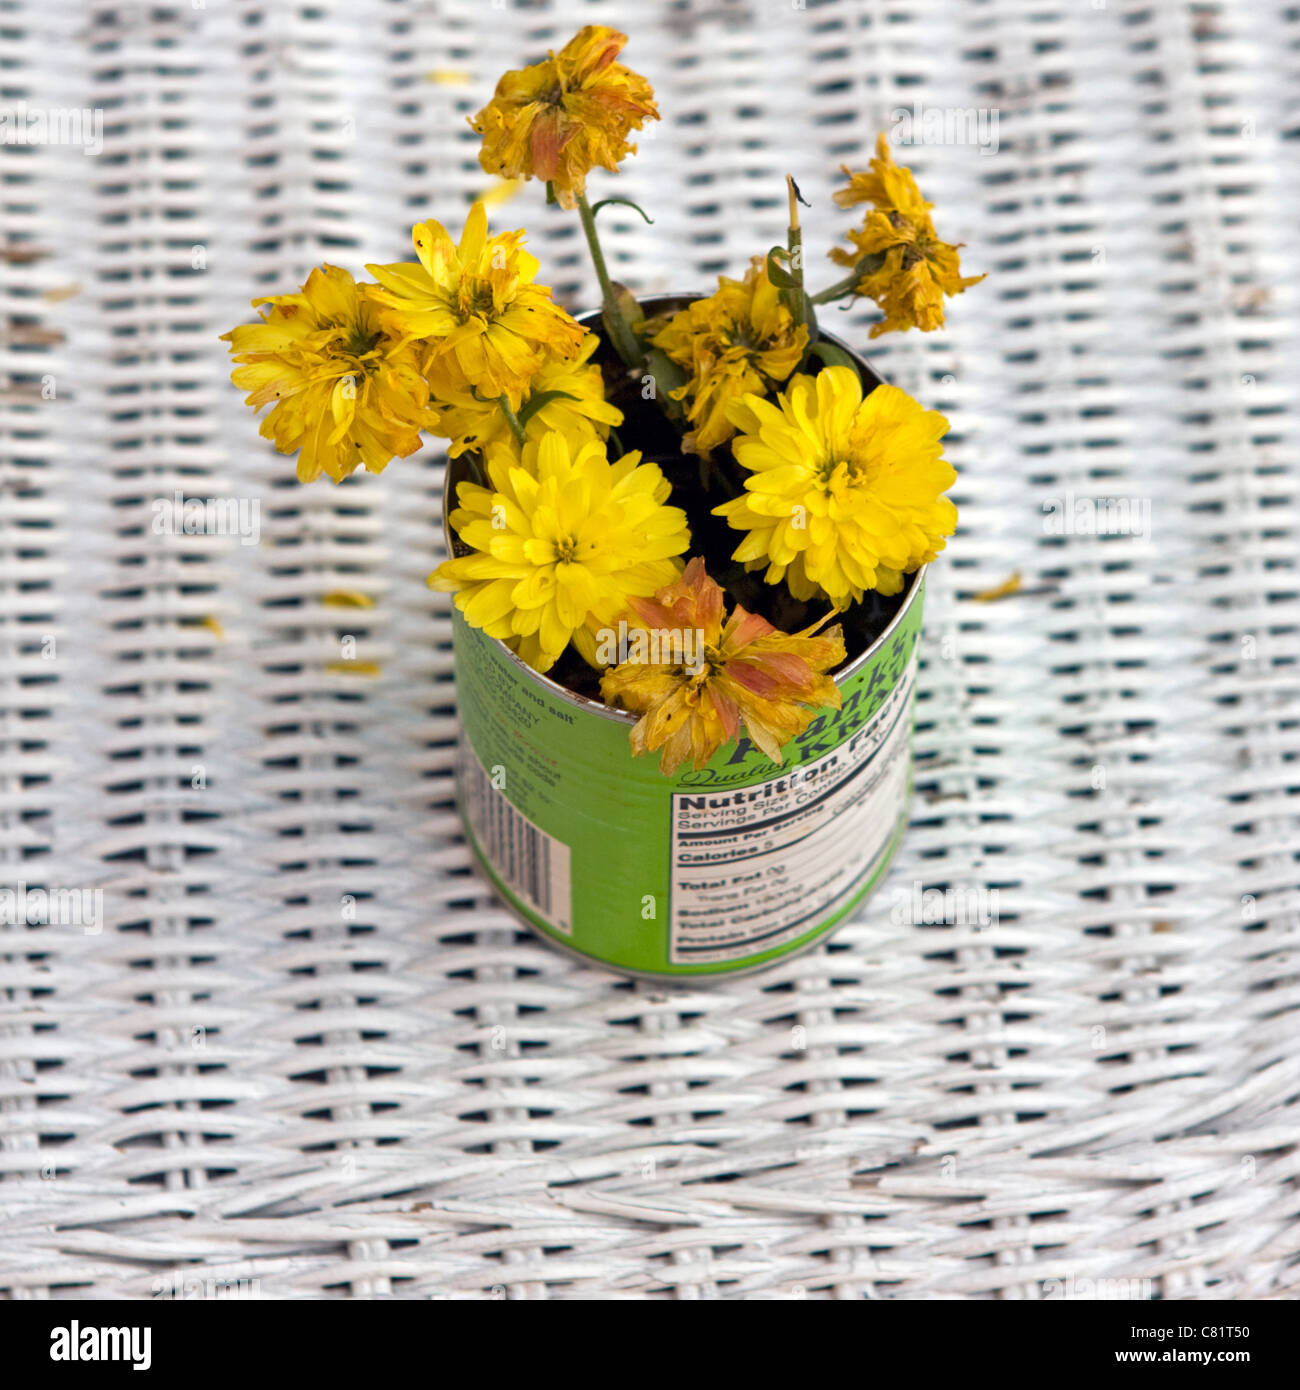 Wildflowers are put in a used tin can to brighten up the surroundings. - Stock Image